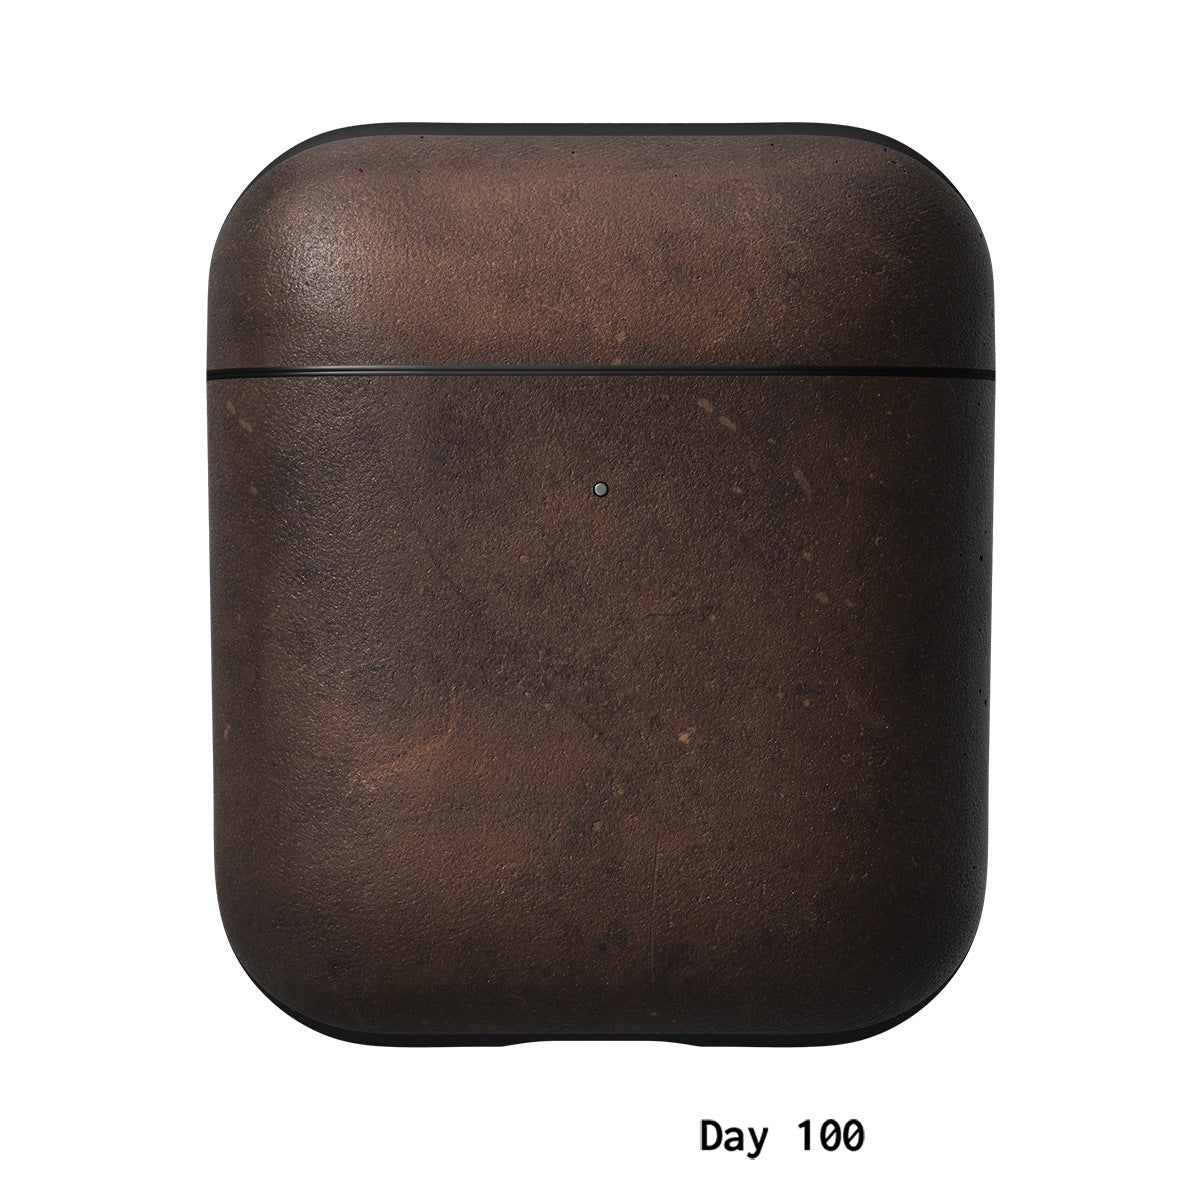 AirPods Rugged Case Horween leather patina after one hundred days.